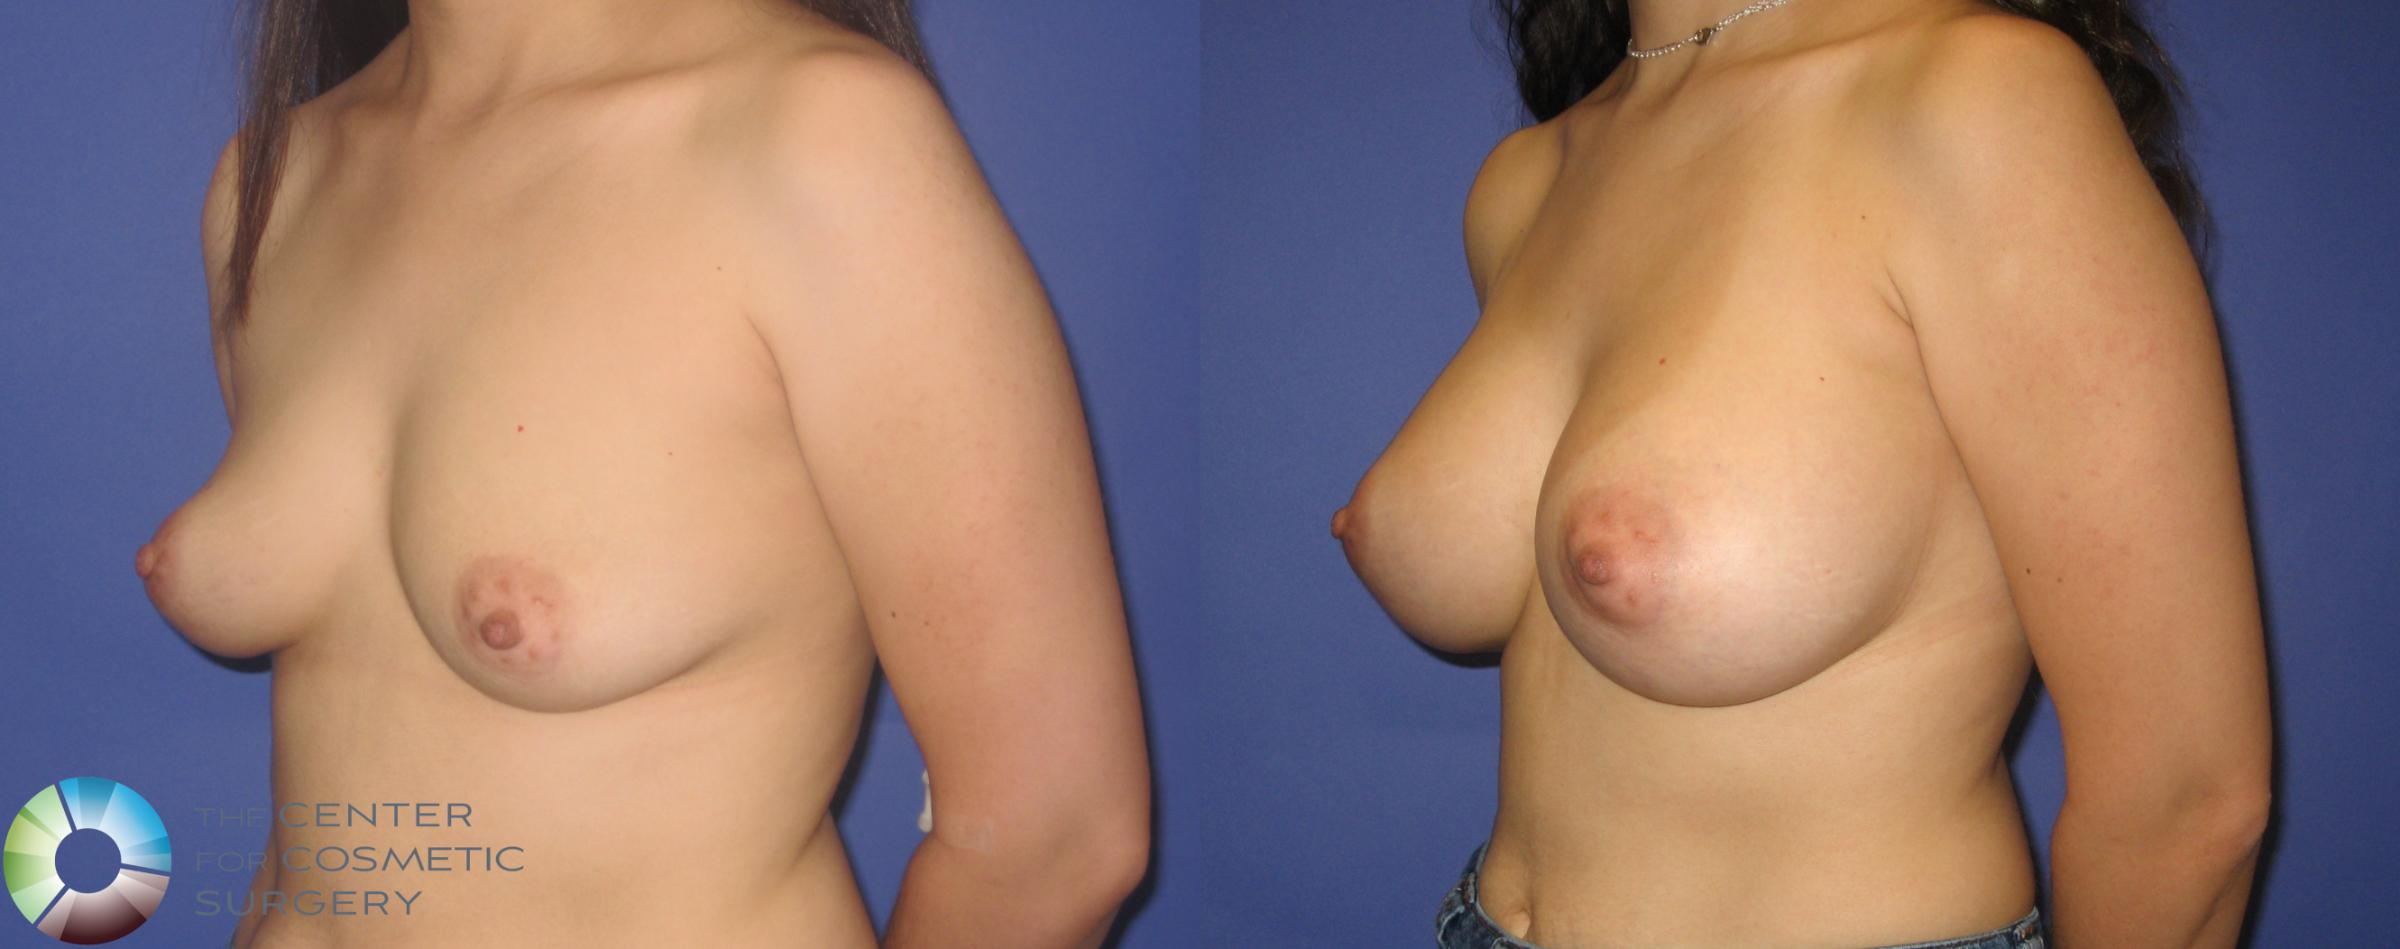 Breast Augmentation Case 273 Before & After View #2 | Golden, CO | The Center for Cosmetic Surgery